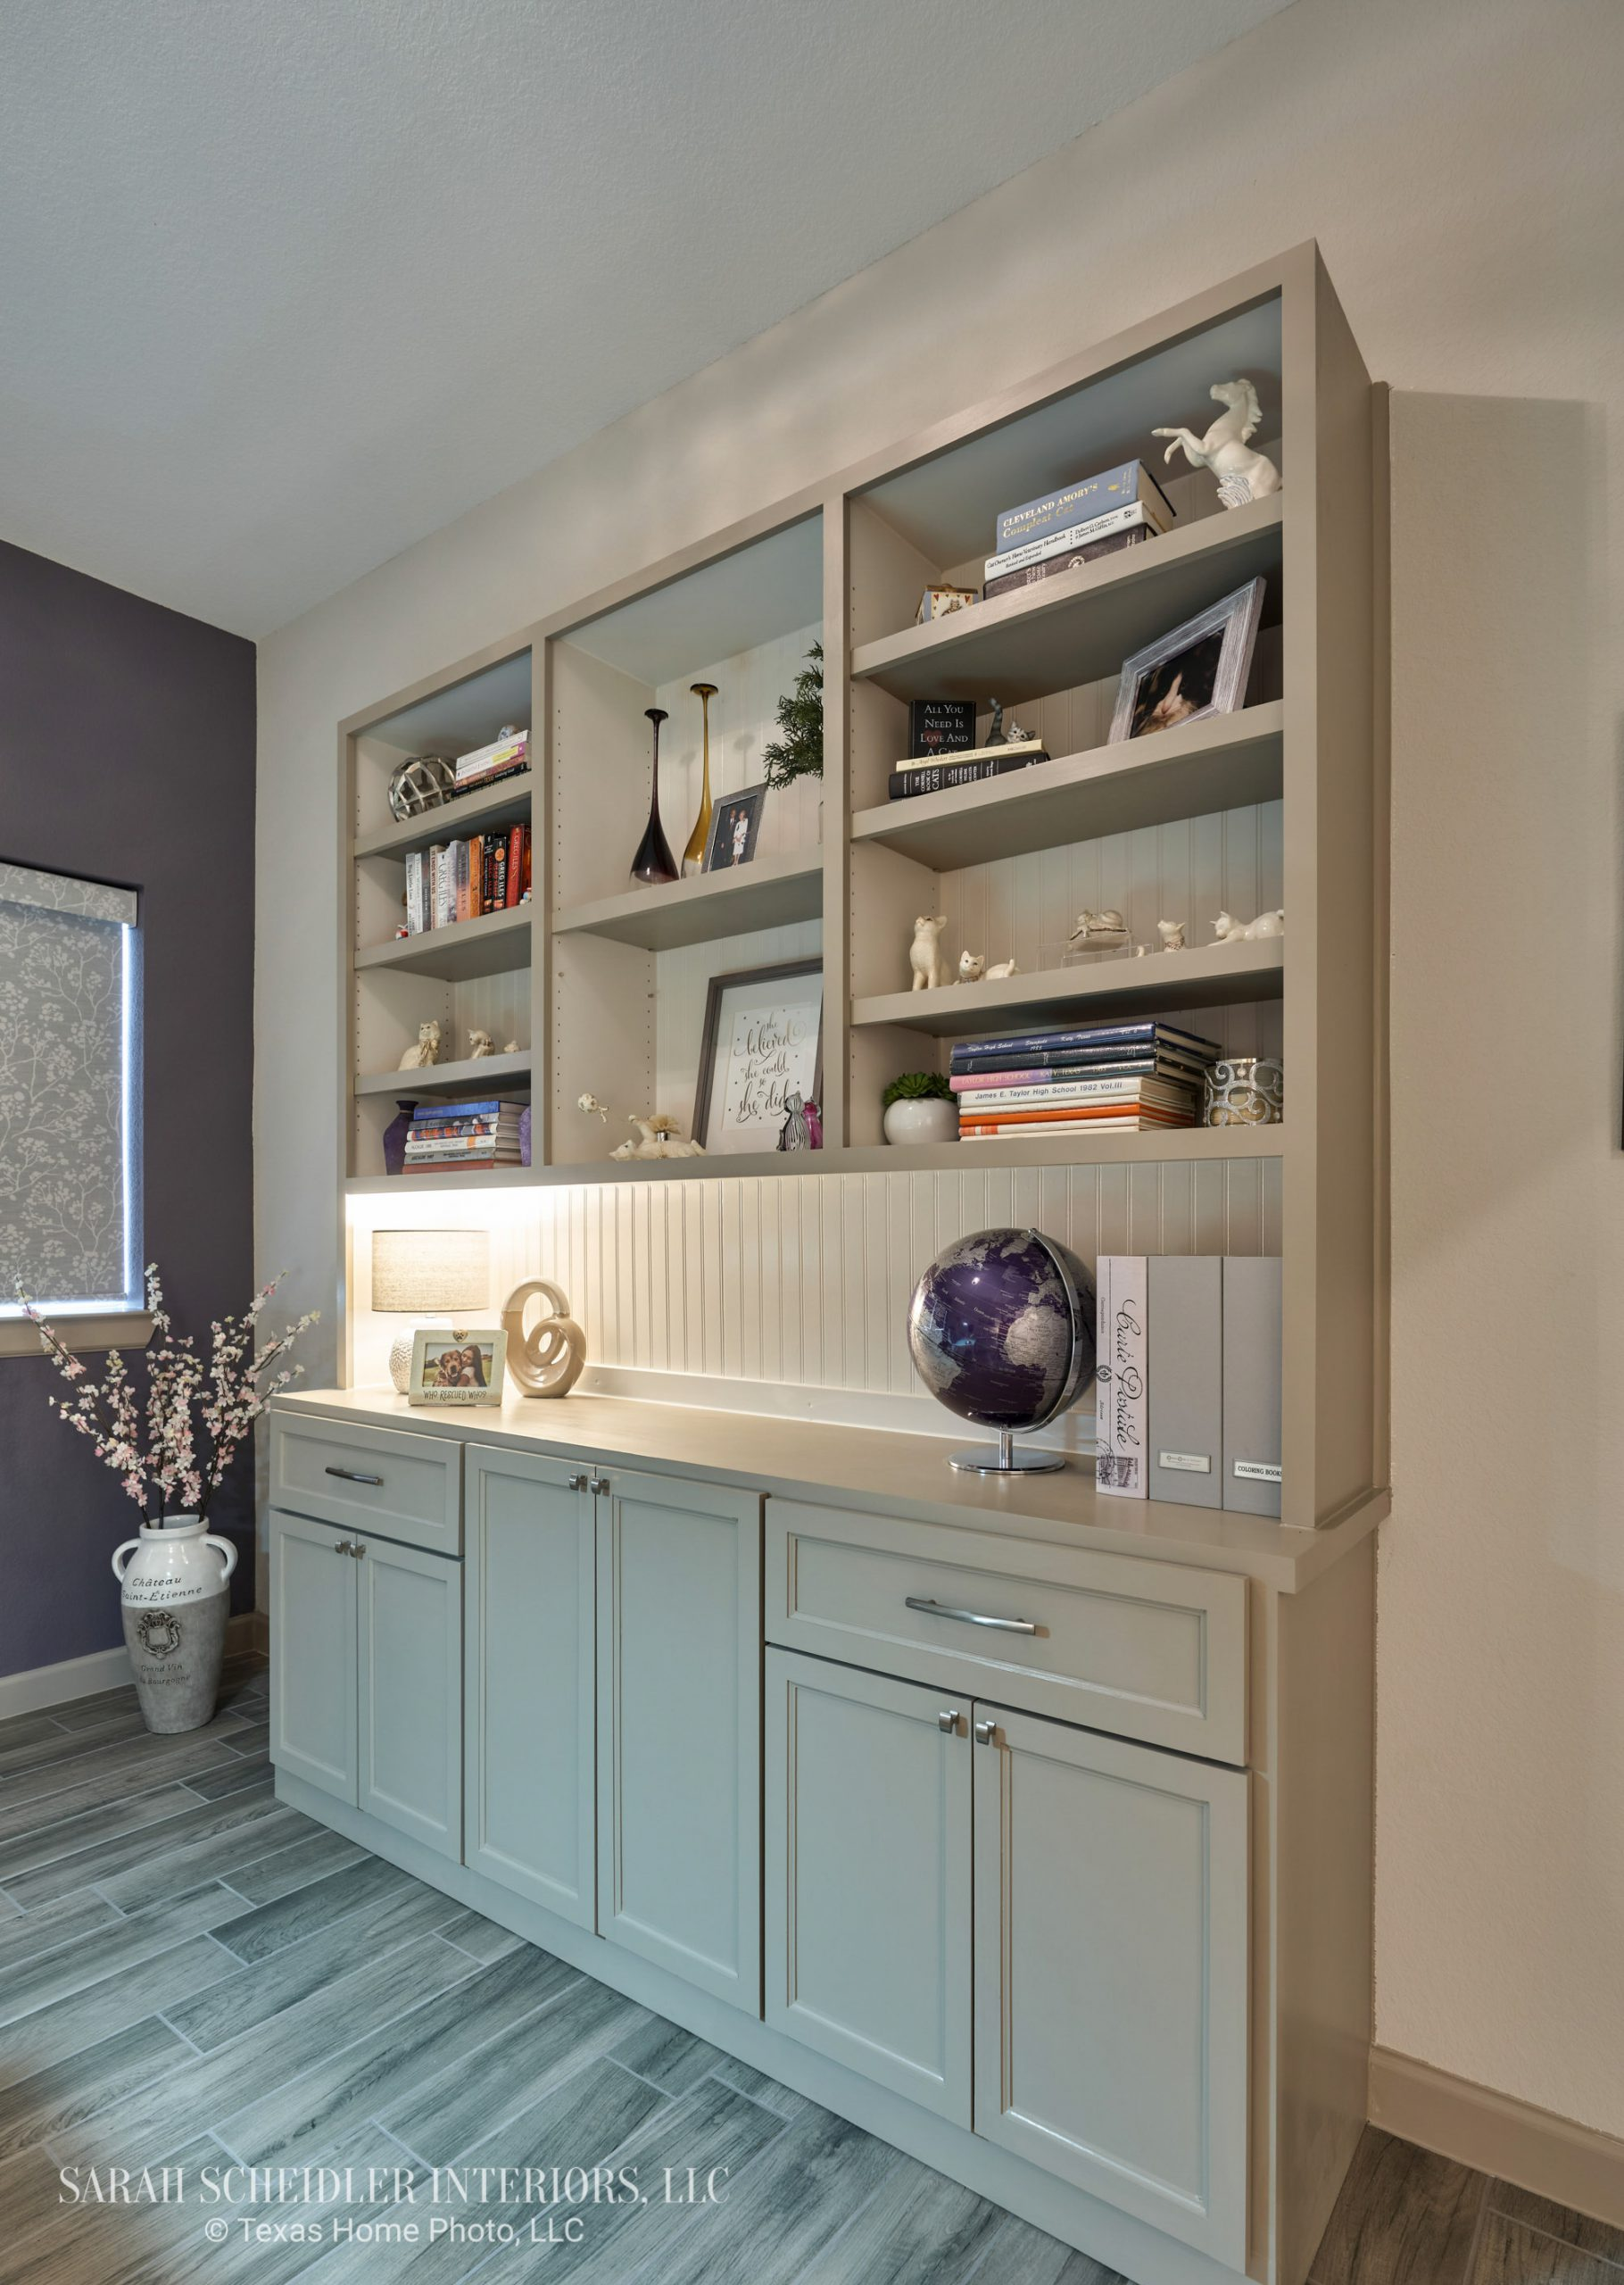 Home Office Design with Purple Accent Wall and Custom Built-Ins